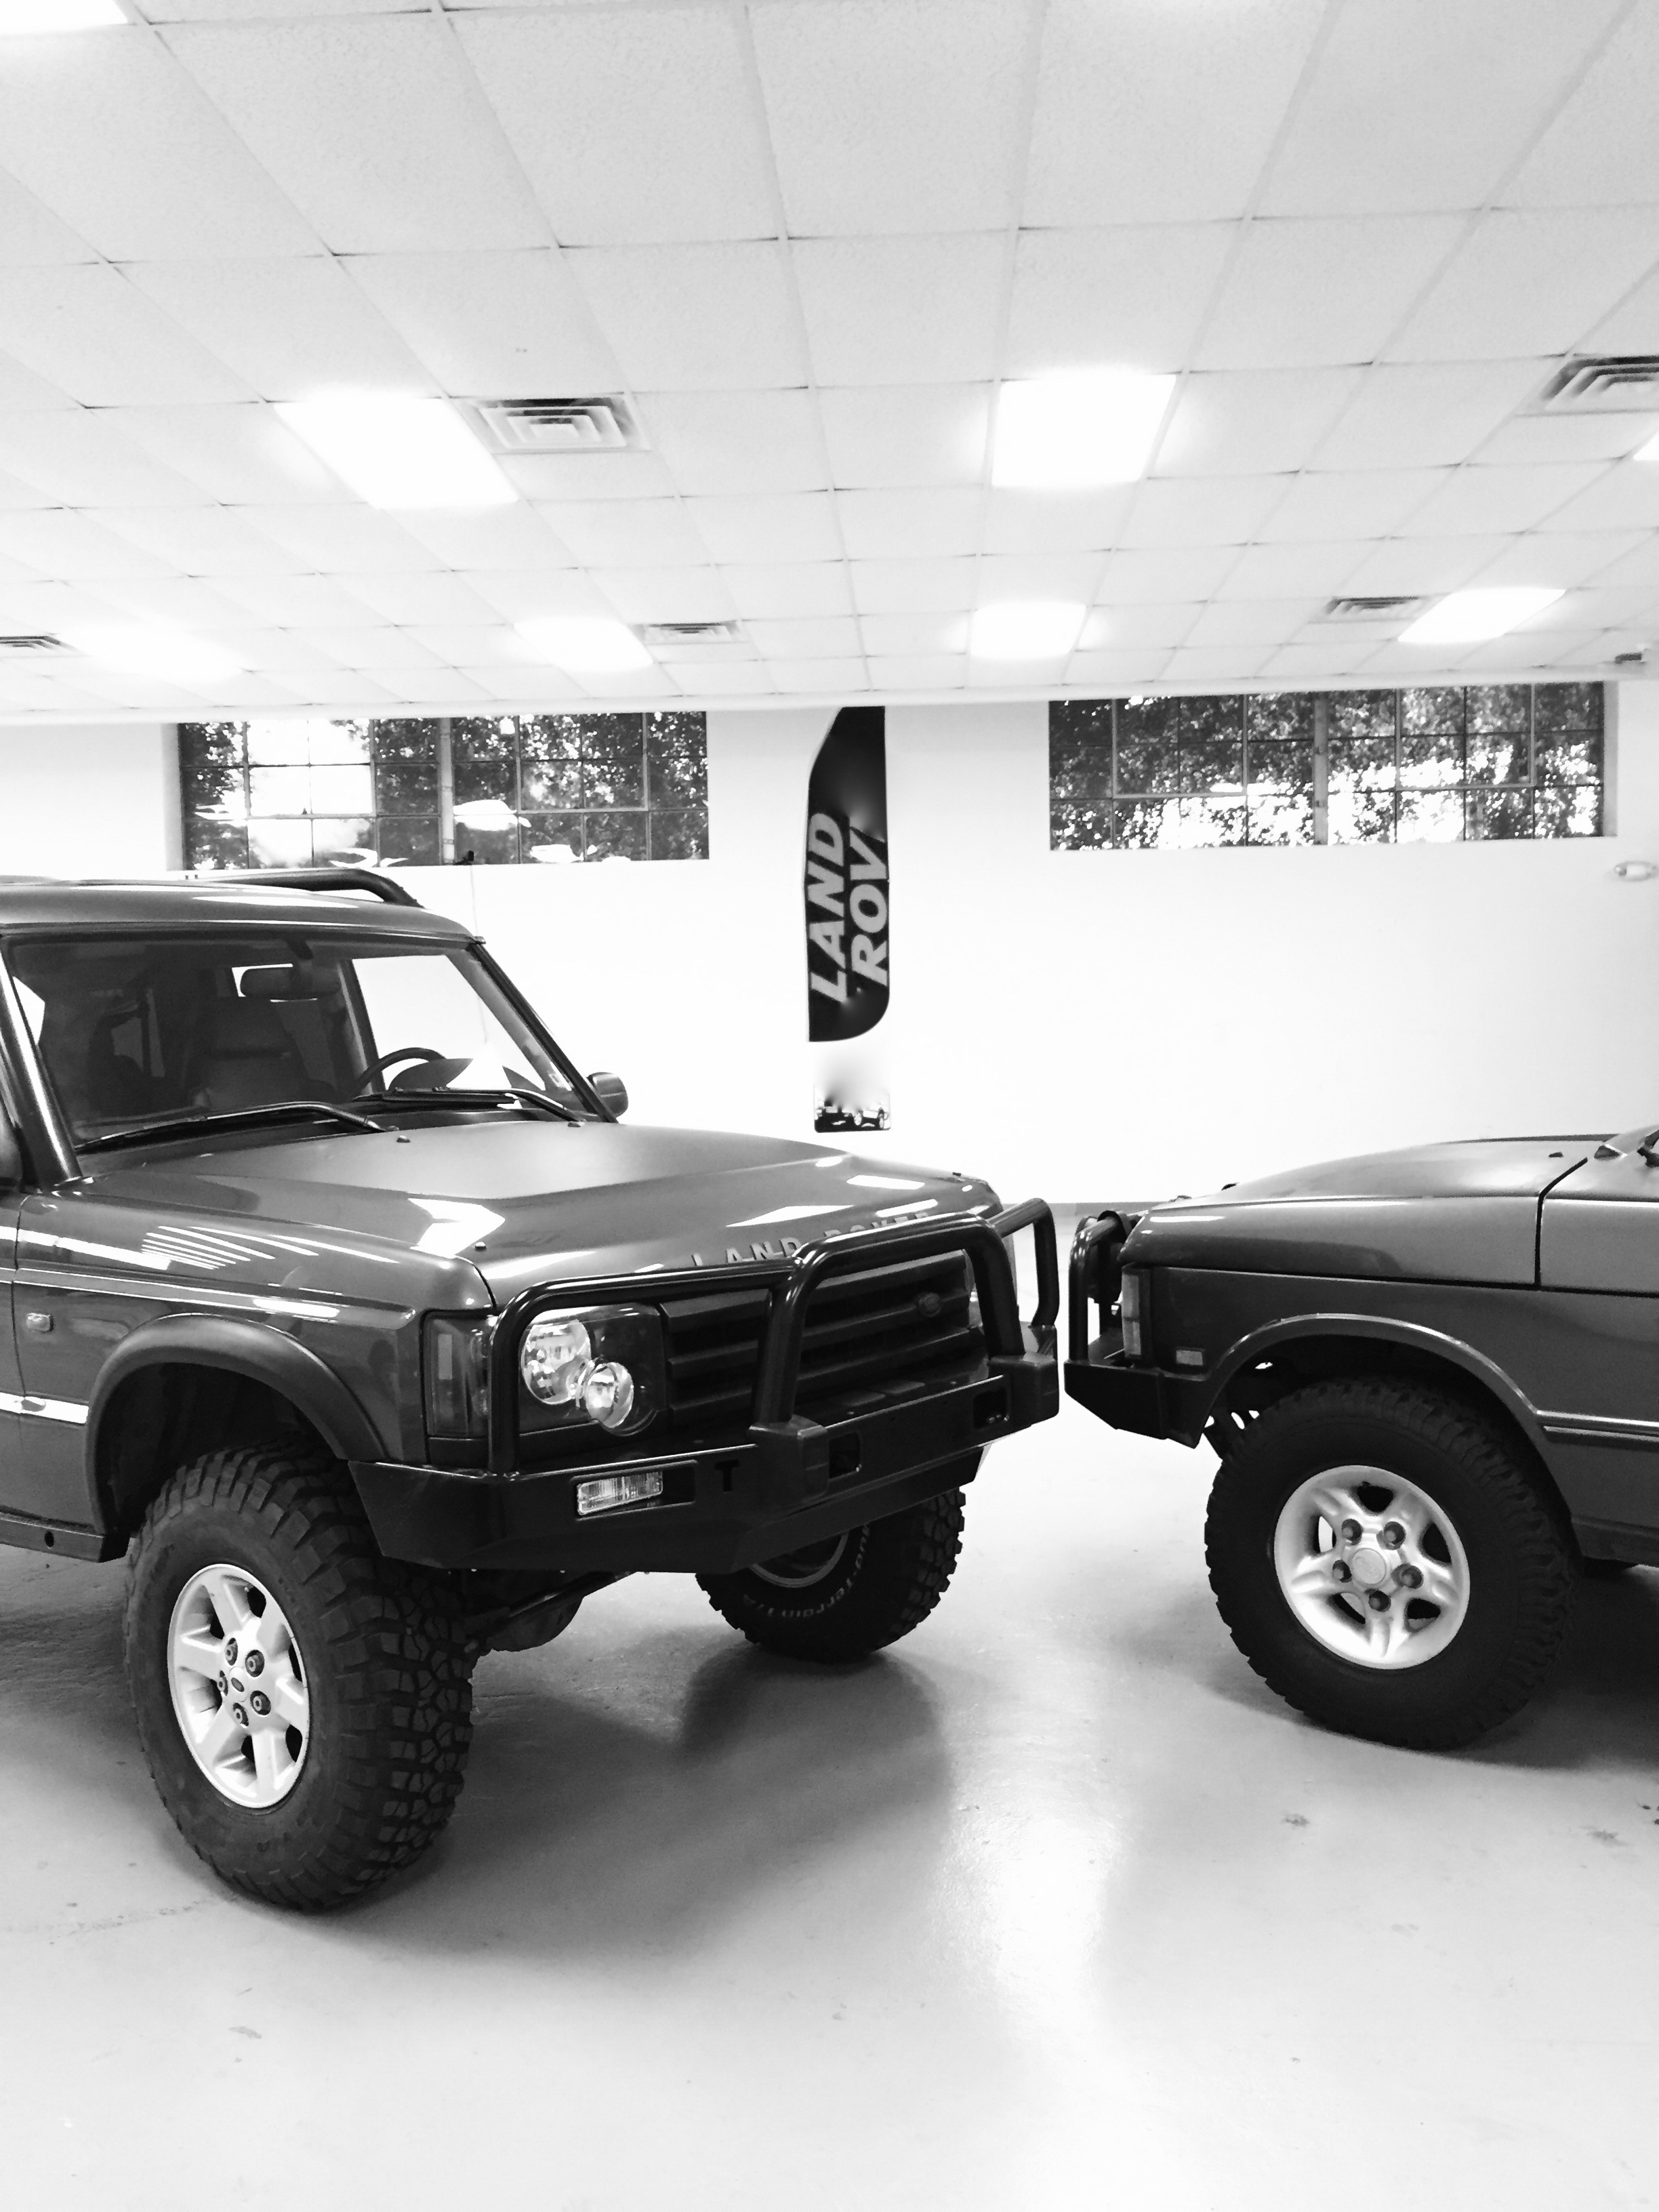 2004 Discovery & 1991 Range Rover